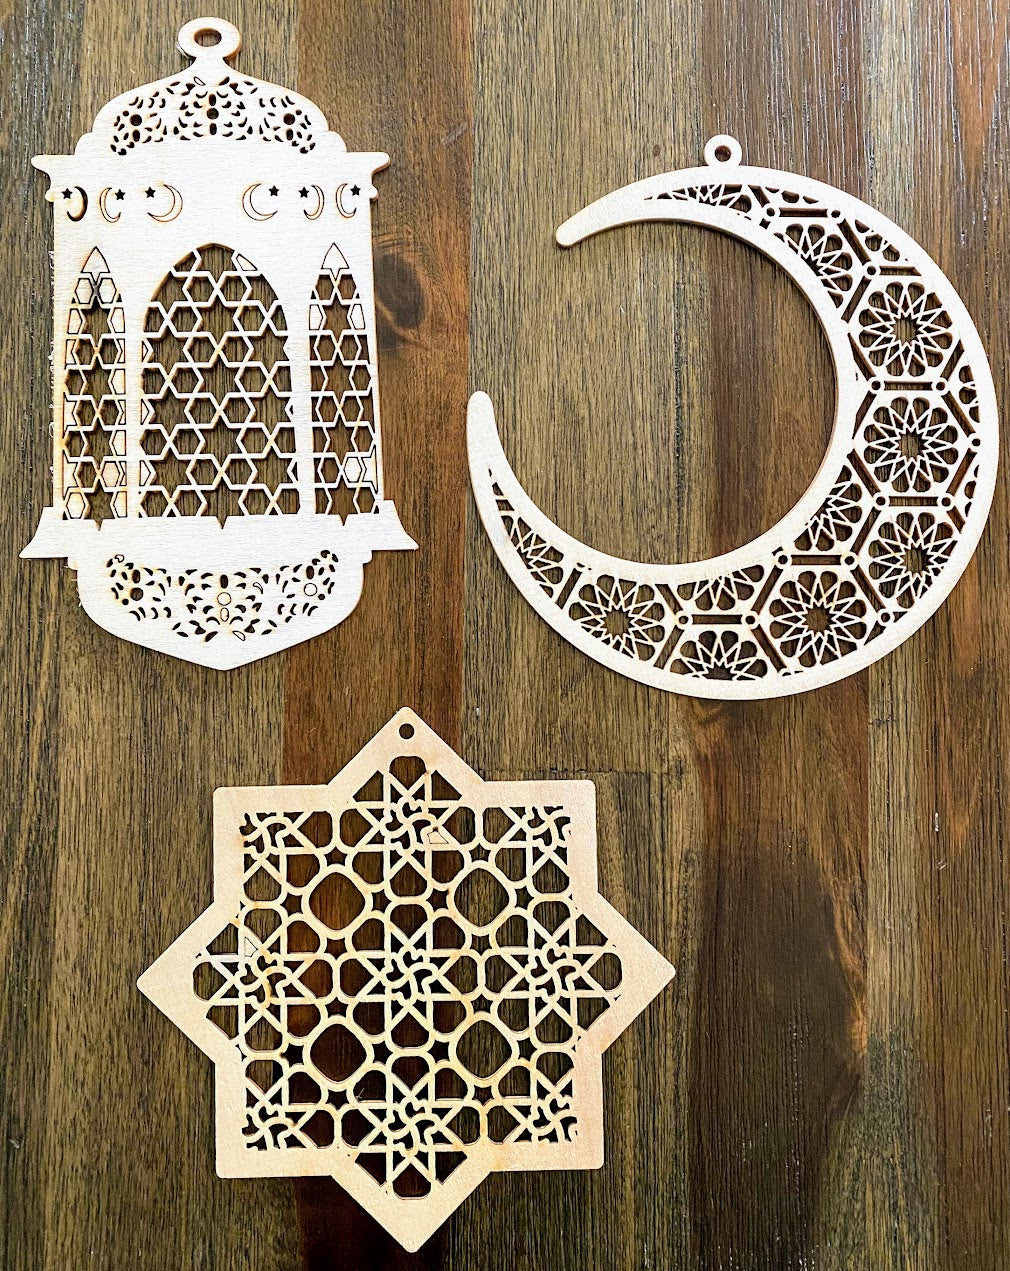 Arabesque/Geometric Wooden Ornaments (set of 3)